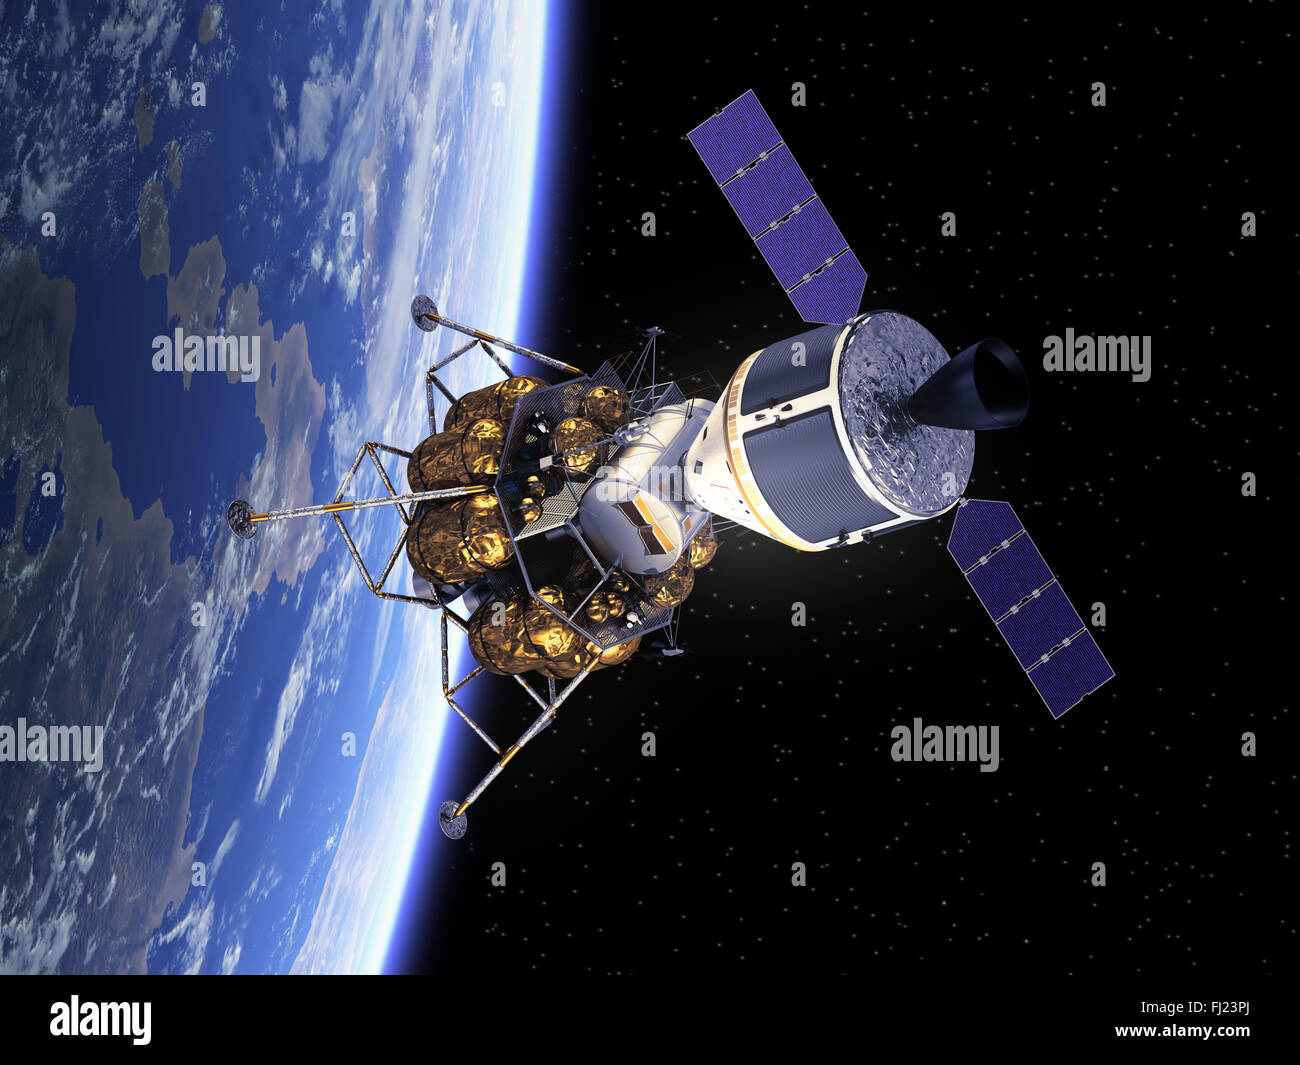 Crew Exploration Vehicle In Space - Stock Image